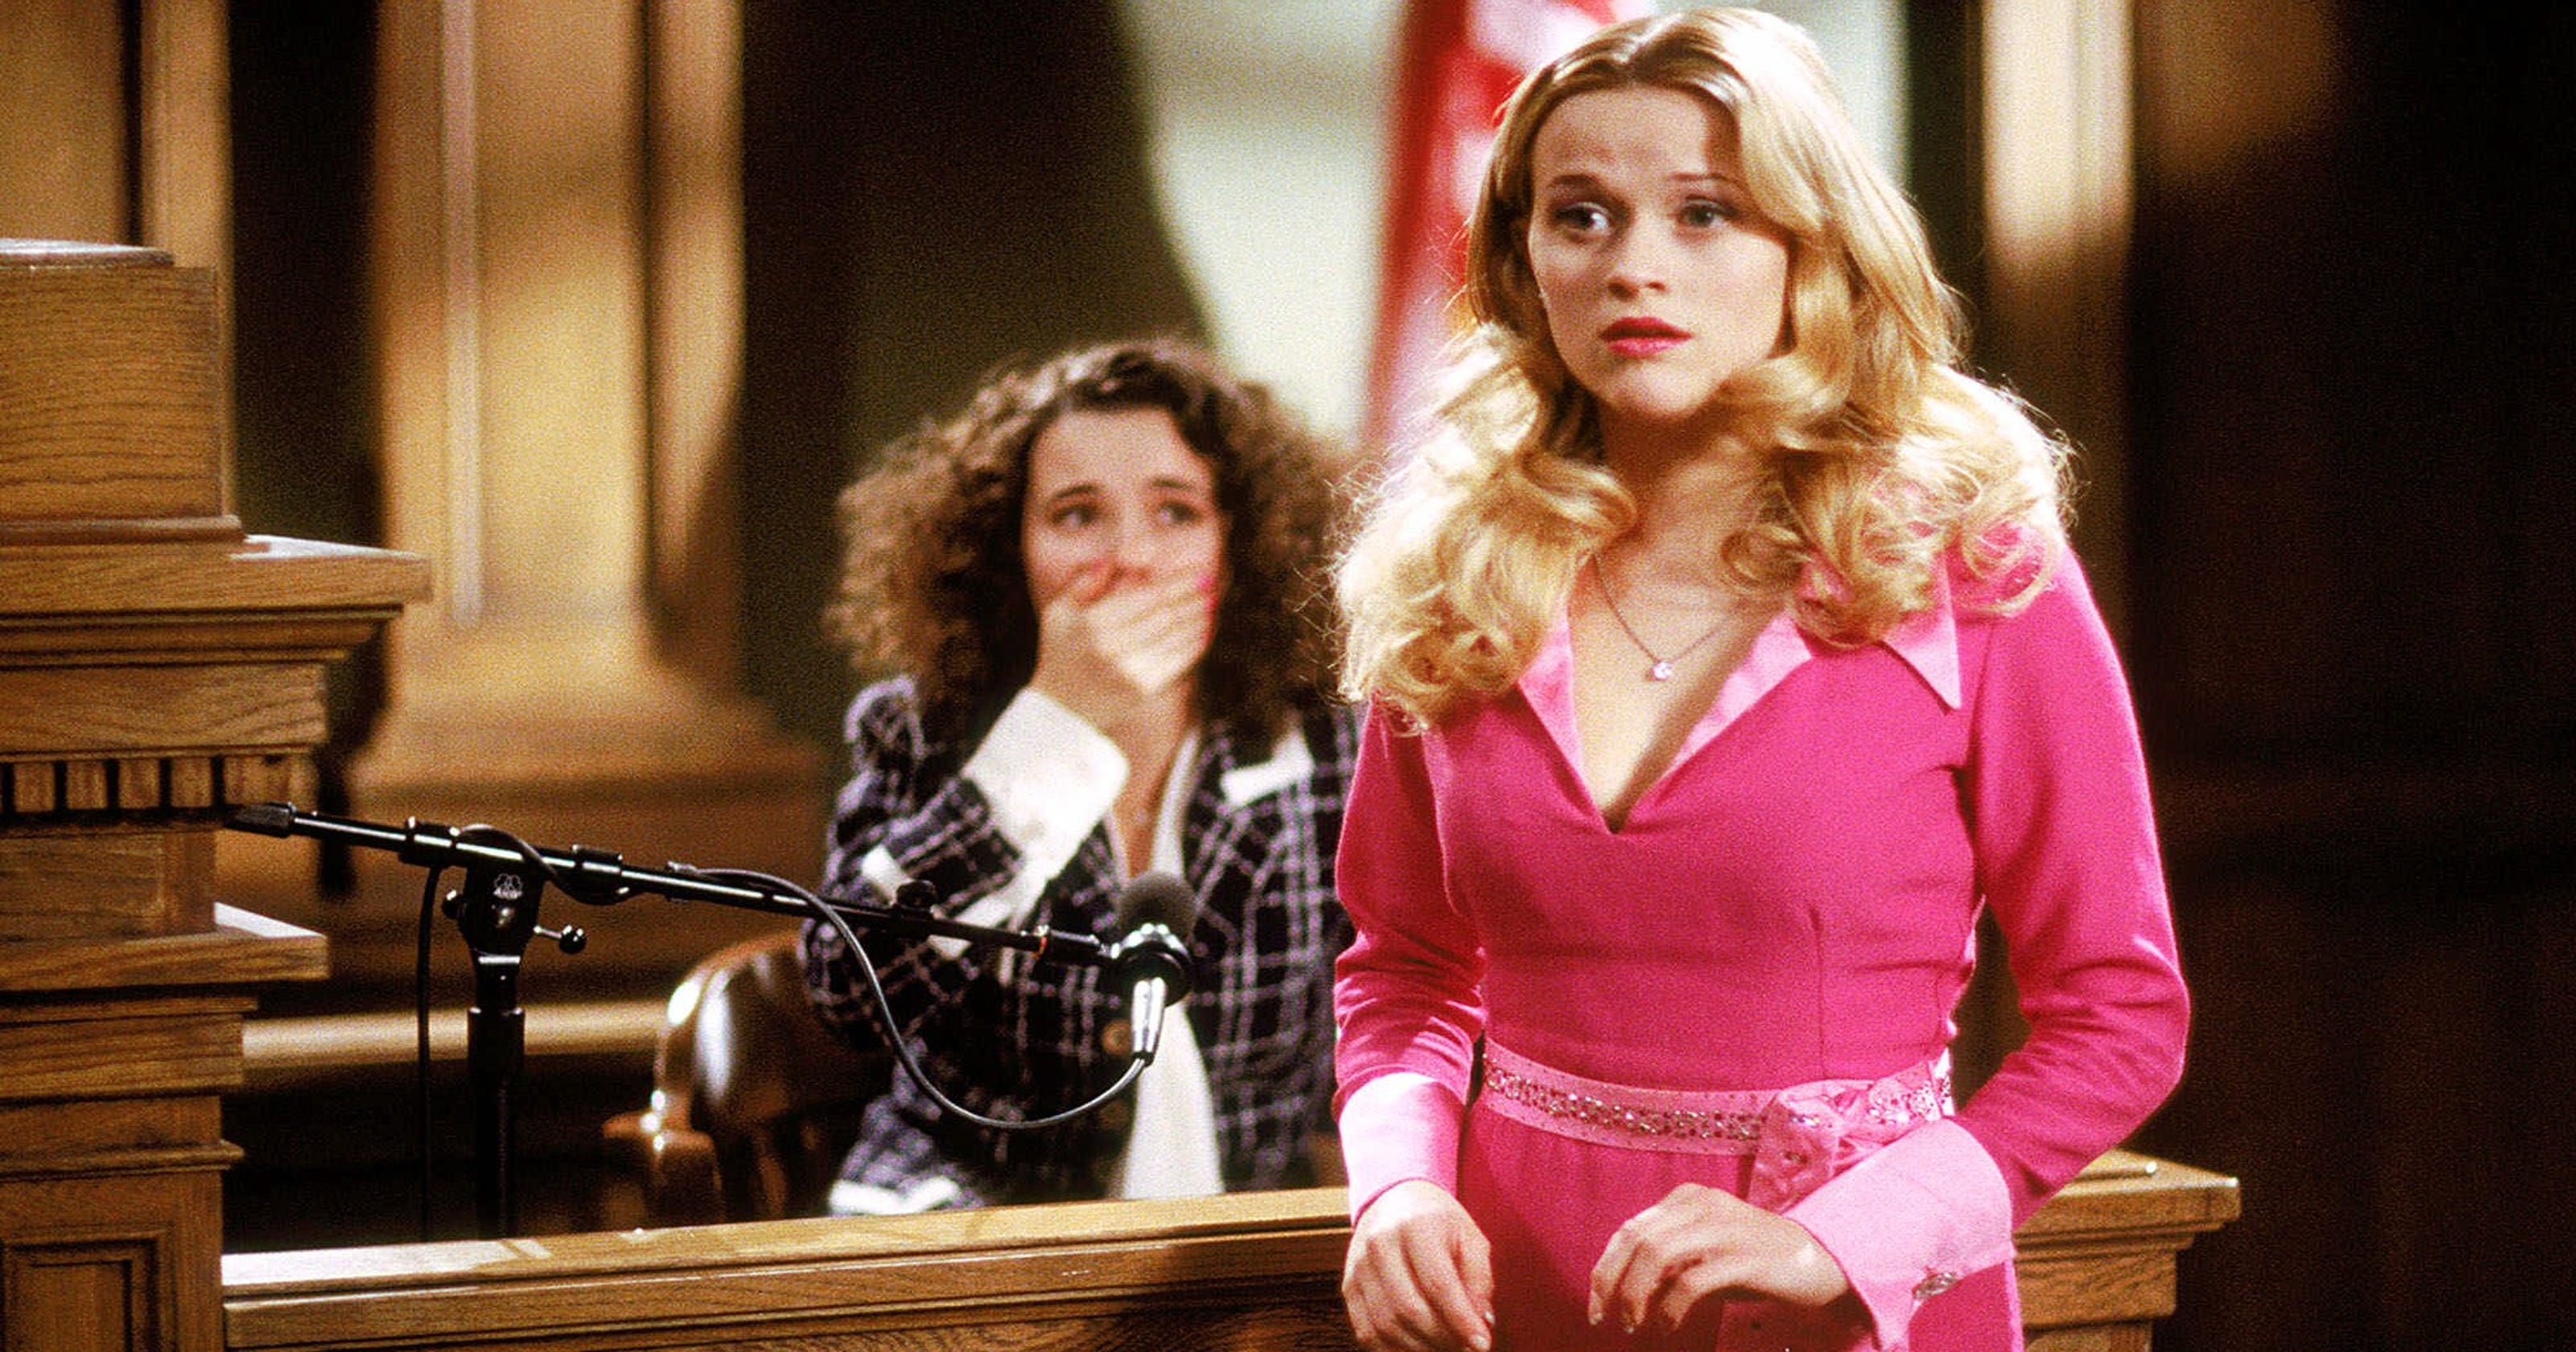 Blonde Unschuld 1989: 'Legally Blonde' Cast: Where Are They Now?